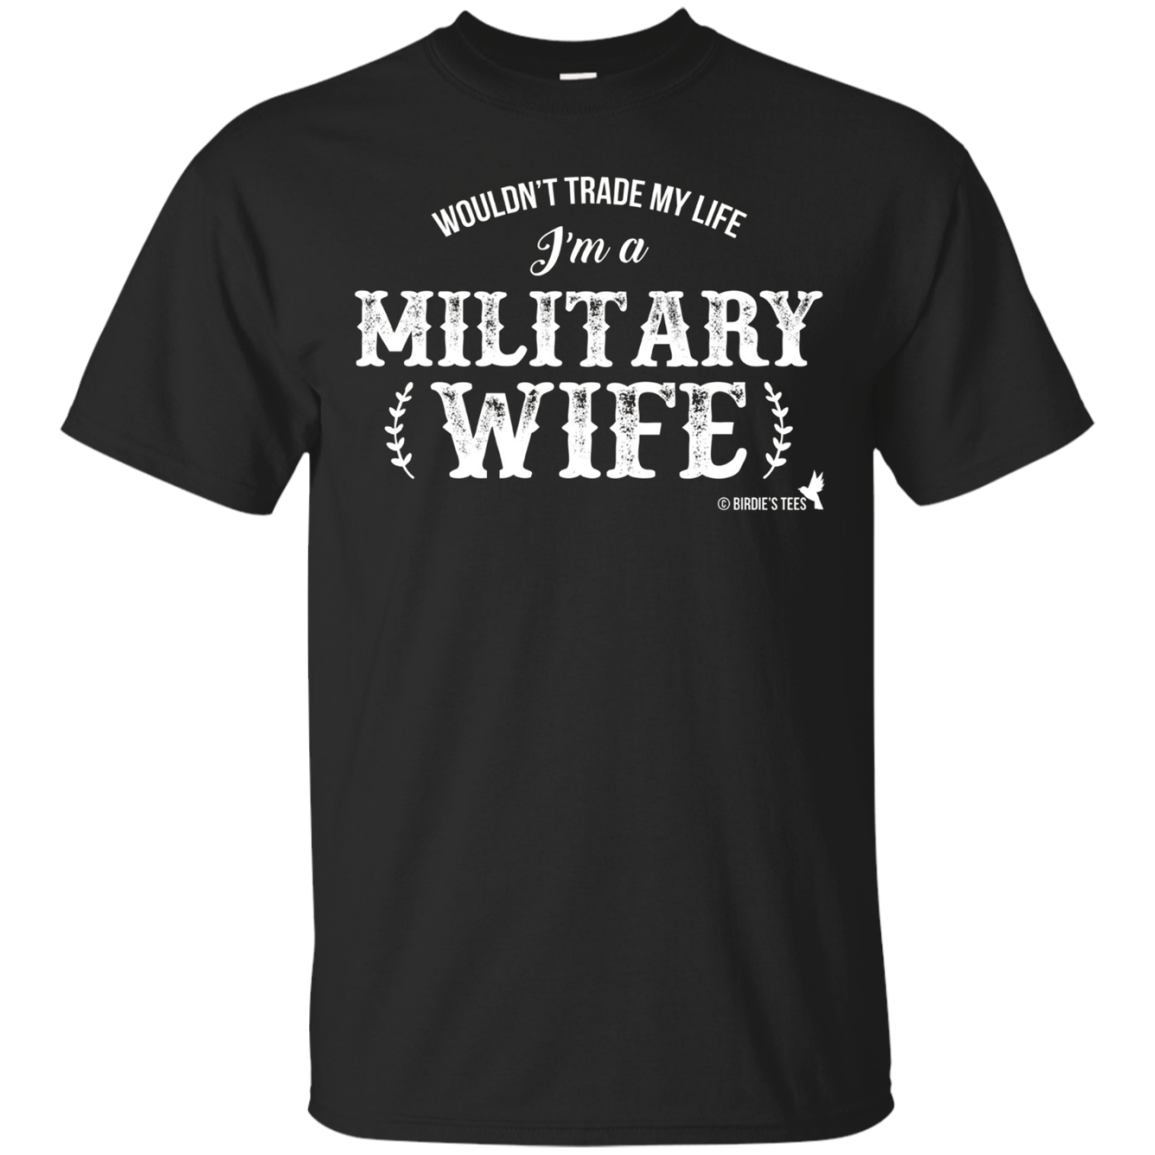 Military TShirt I'm a Military Wife